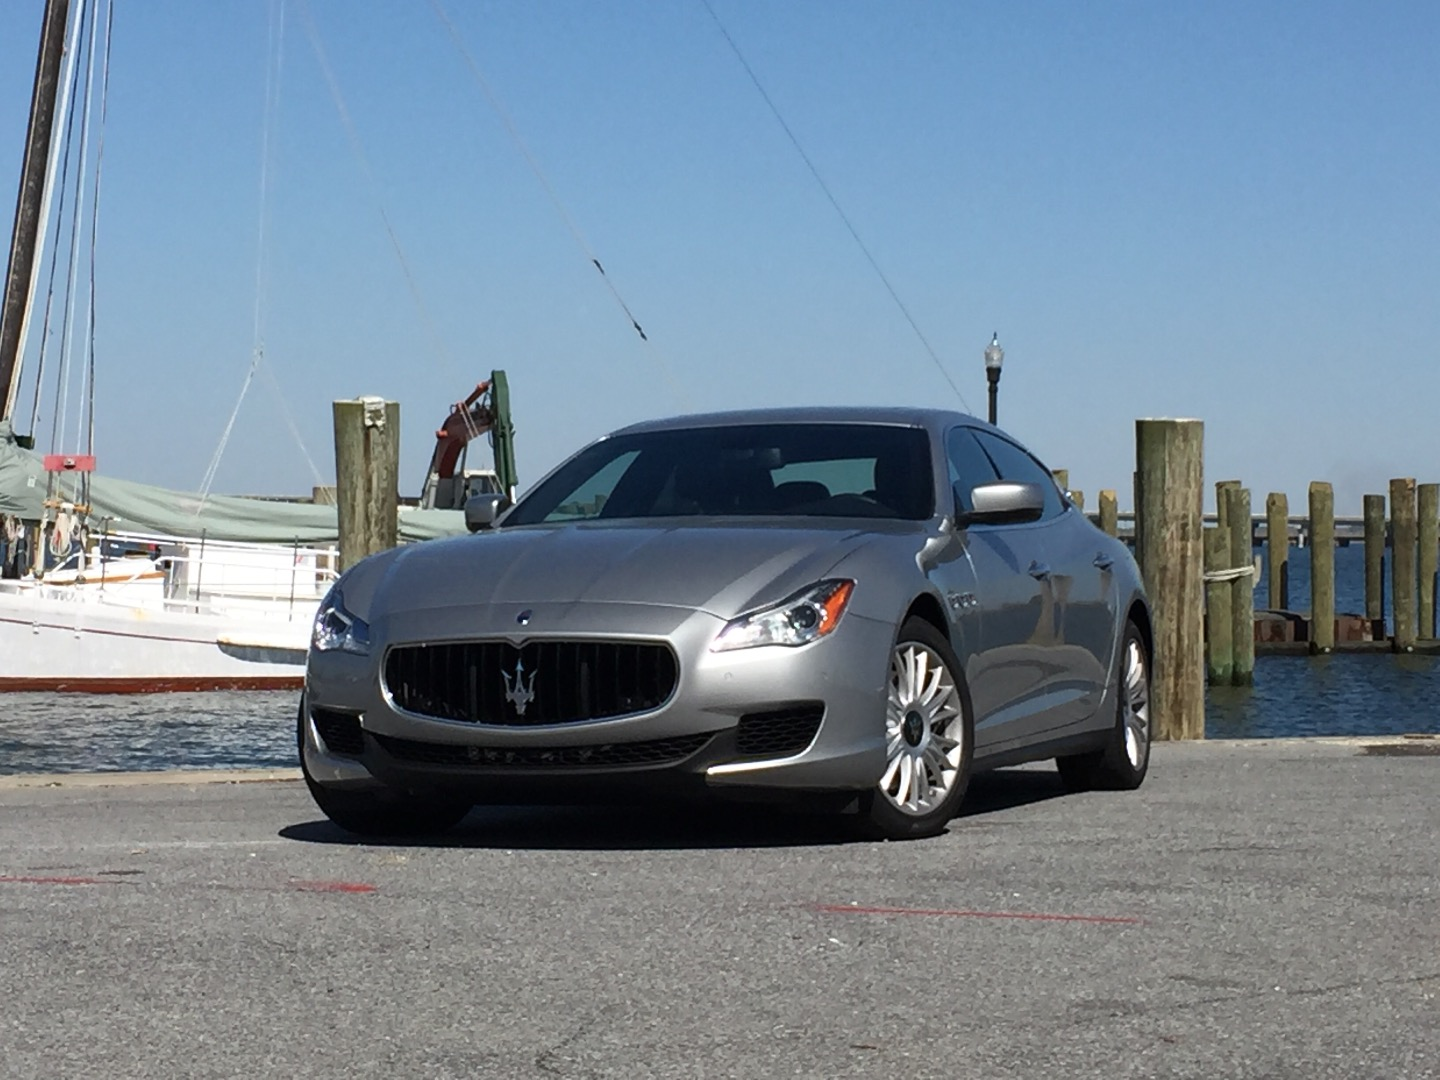 2014 Maserati Quattroporte S Q4:2 car images available